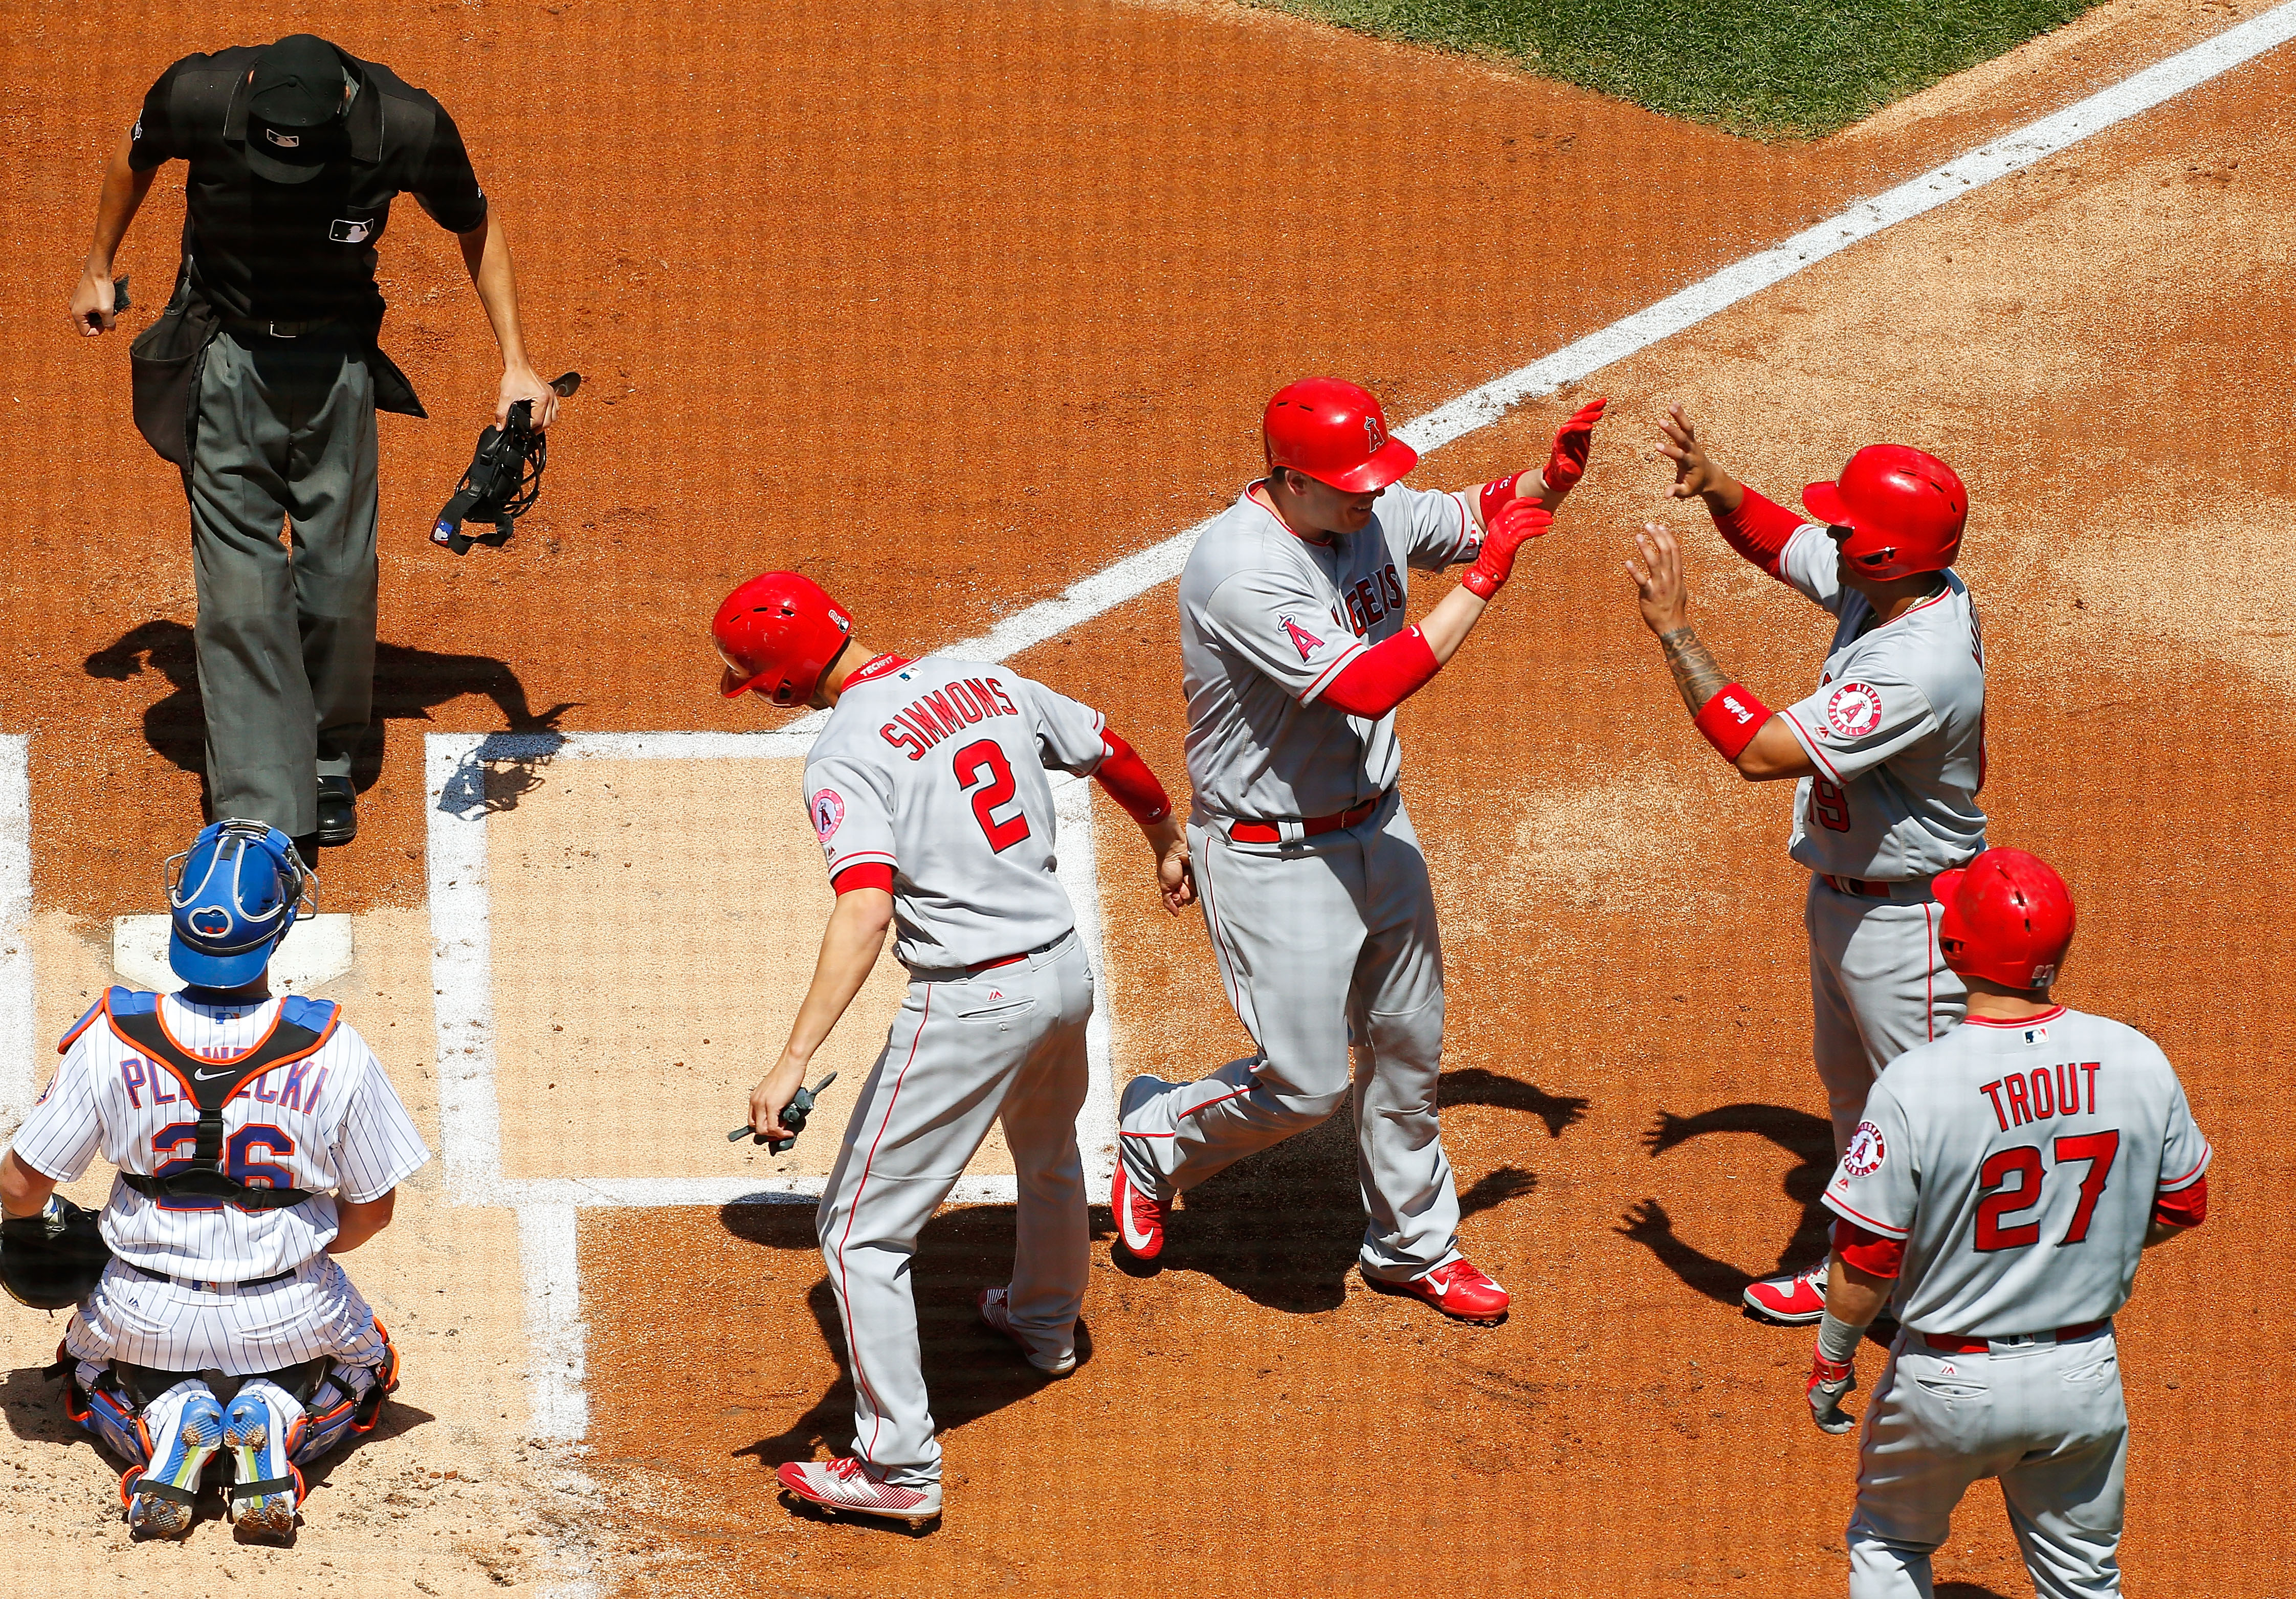 Los Angeles Angels of Anaheim v New York Mets